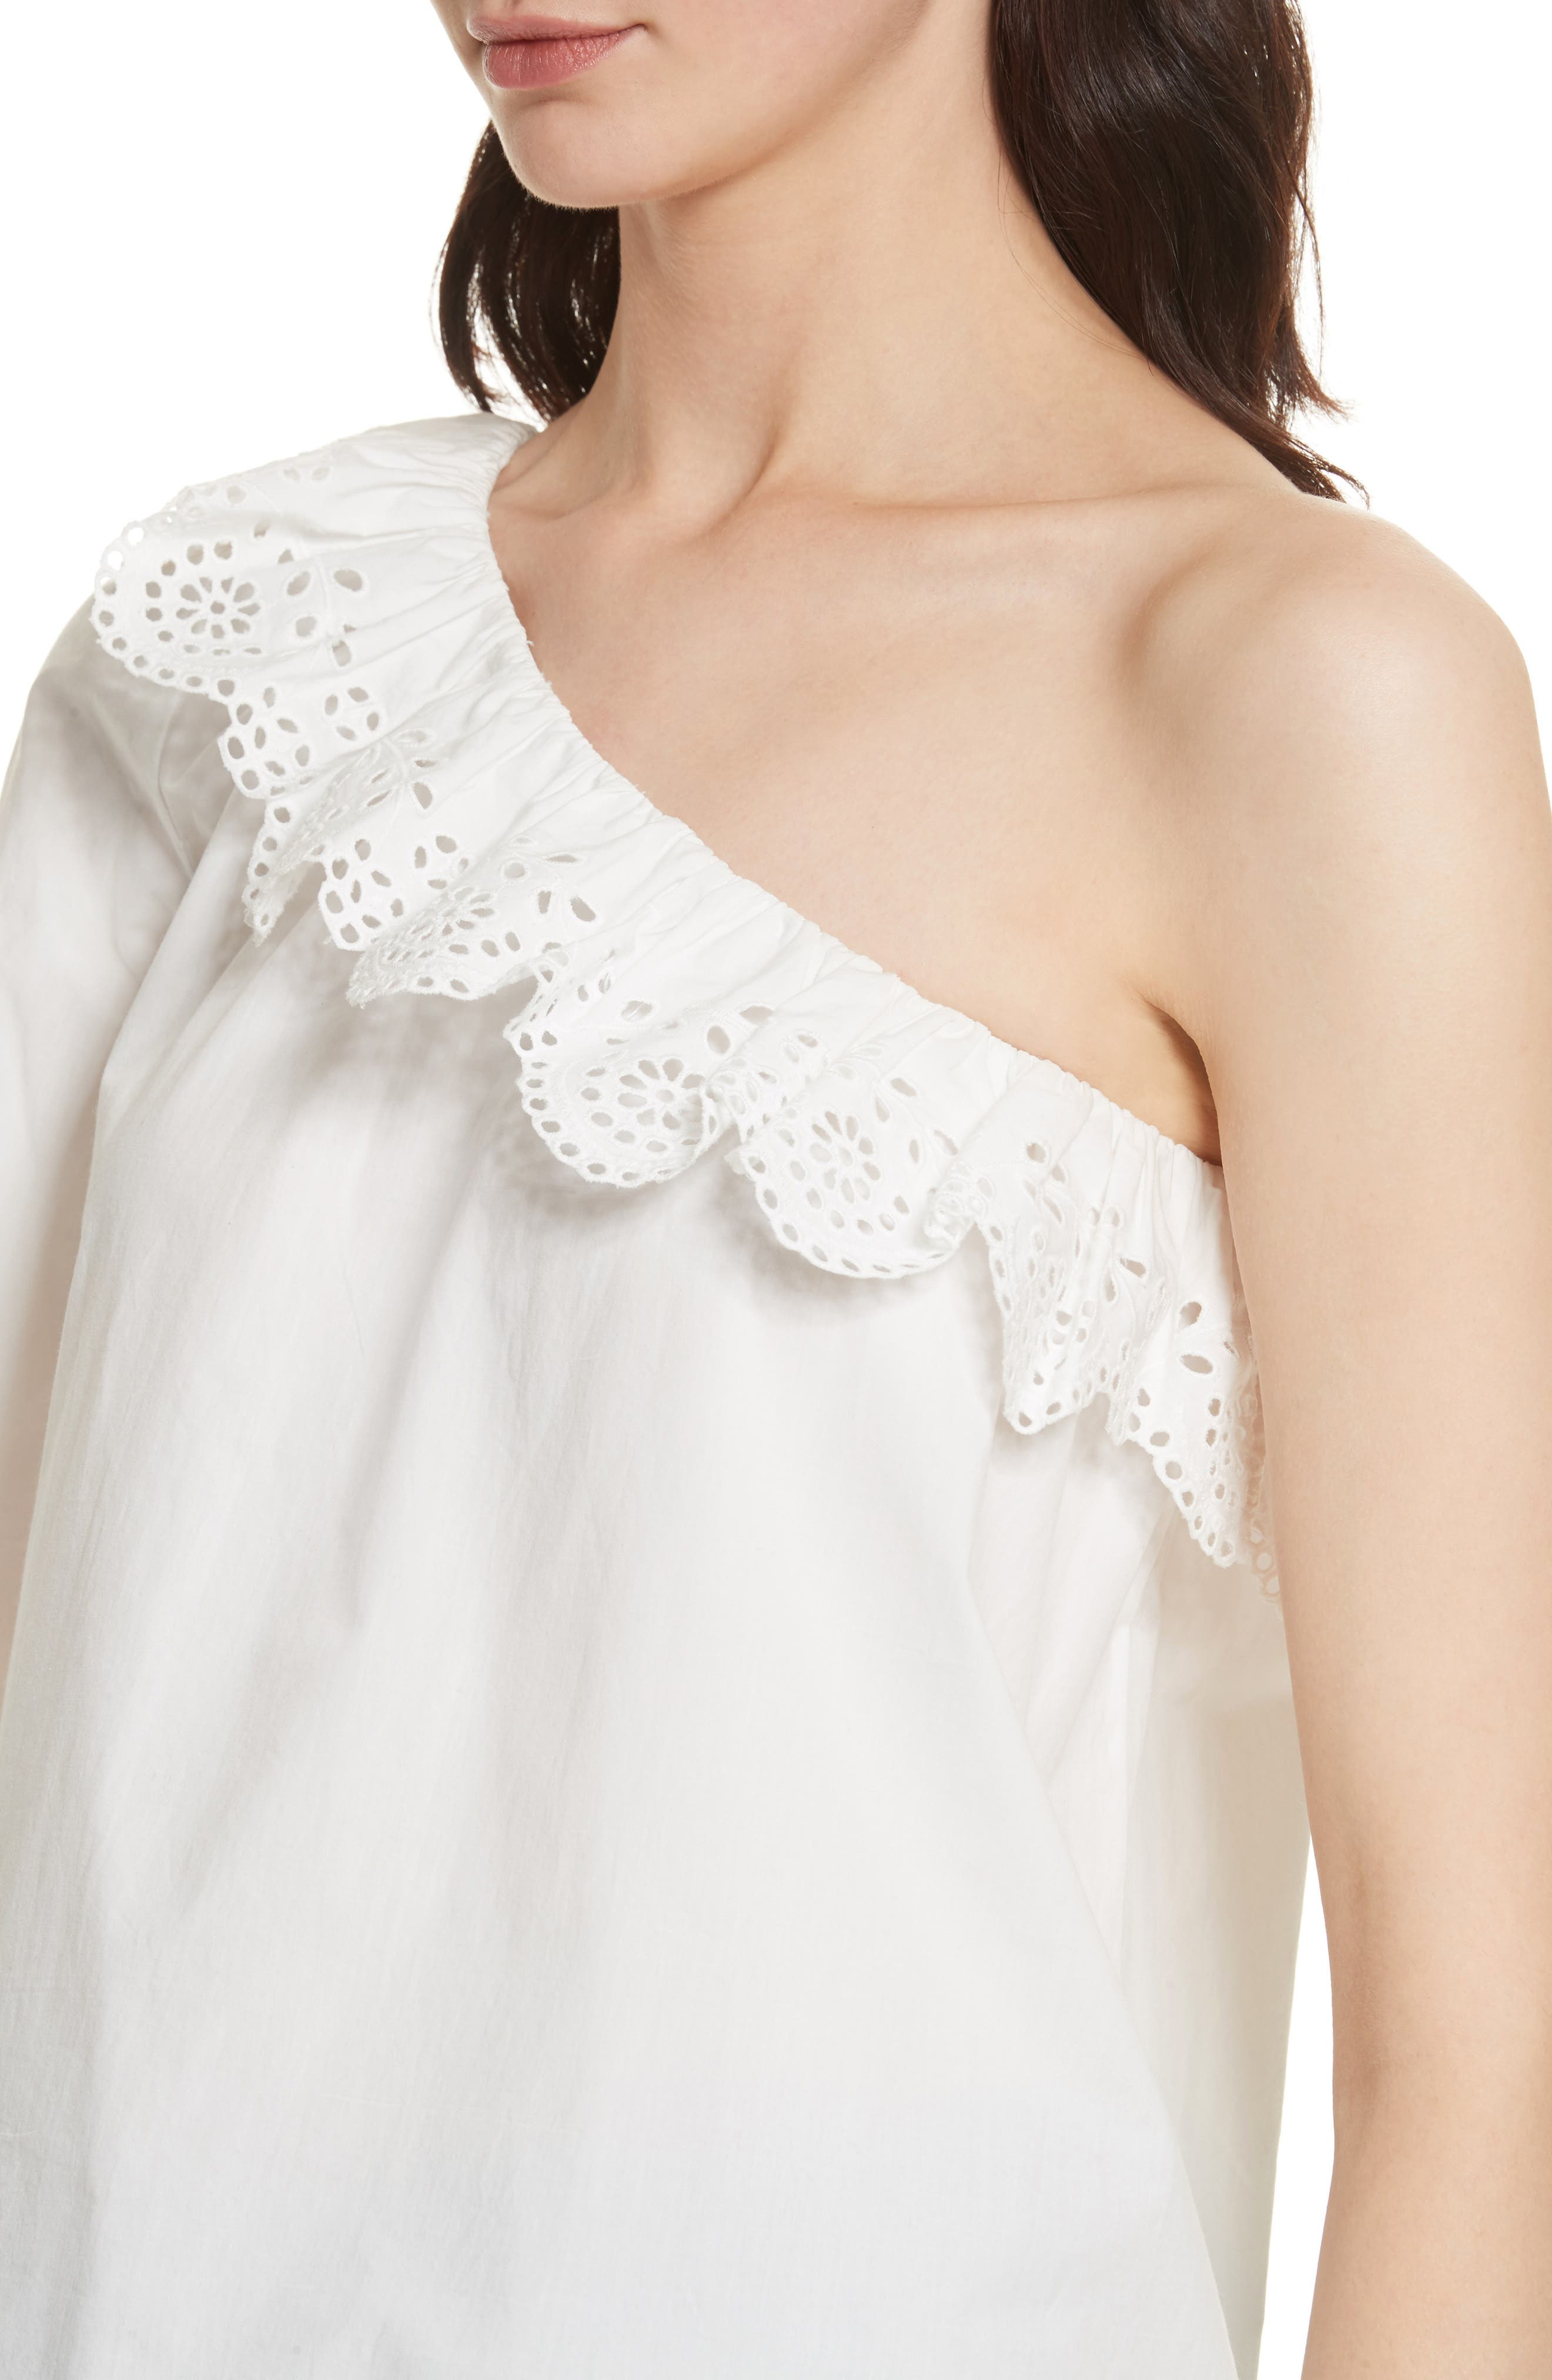 Arianthe One-Shoulder Eyelet Top,                             Alternate thumbnail 4, color,                             121